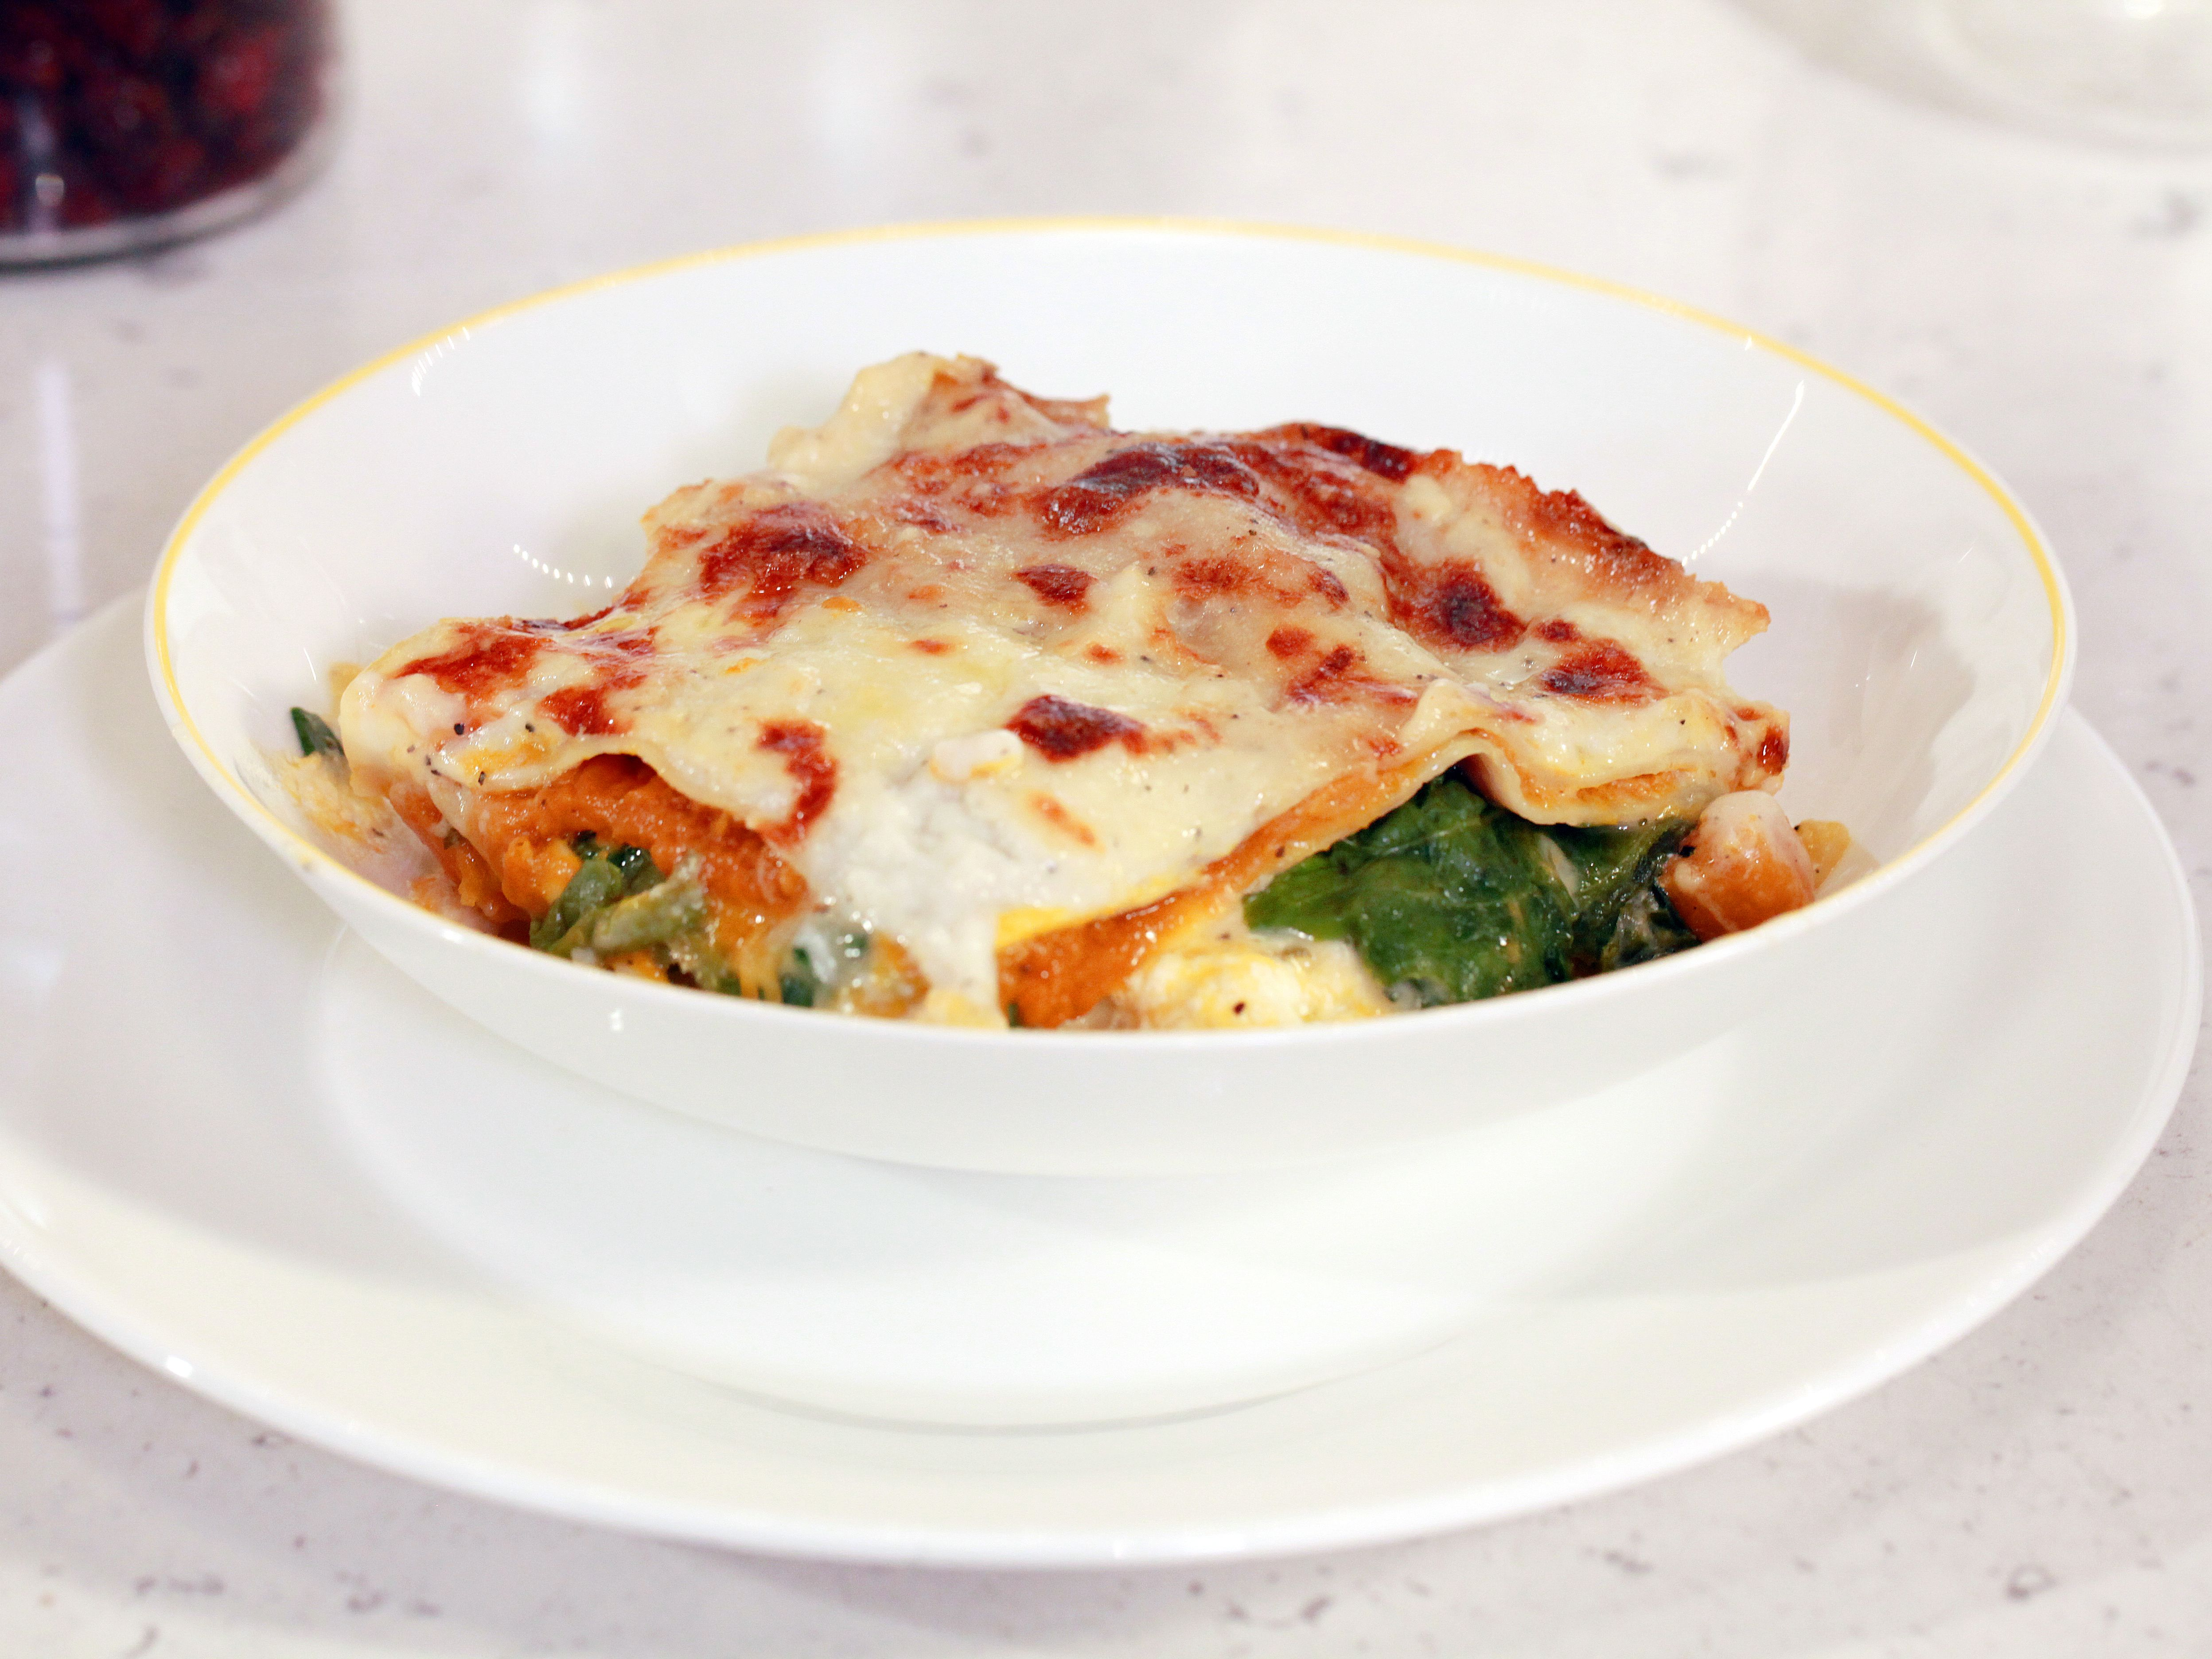 Pumpkin lovers lasagna recipes cooking channel lovers rachel pumpkin lovers lasagna lasagna recipescooking forumfinder Image collections